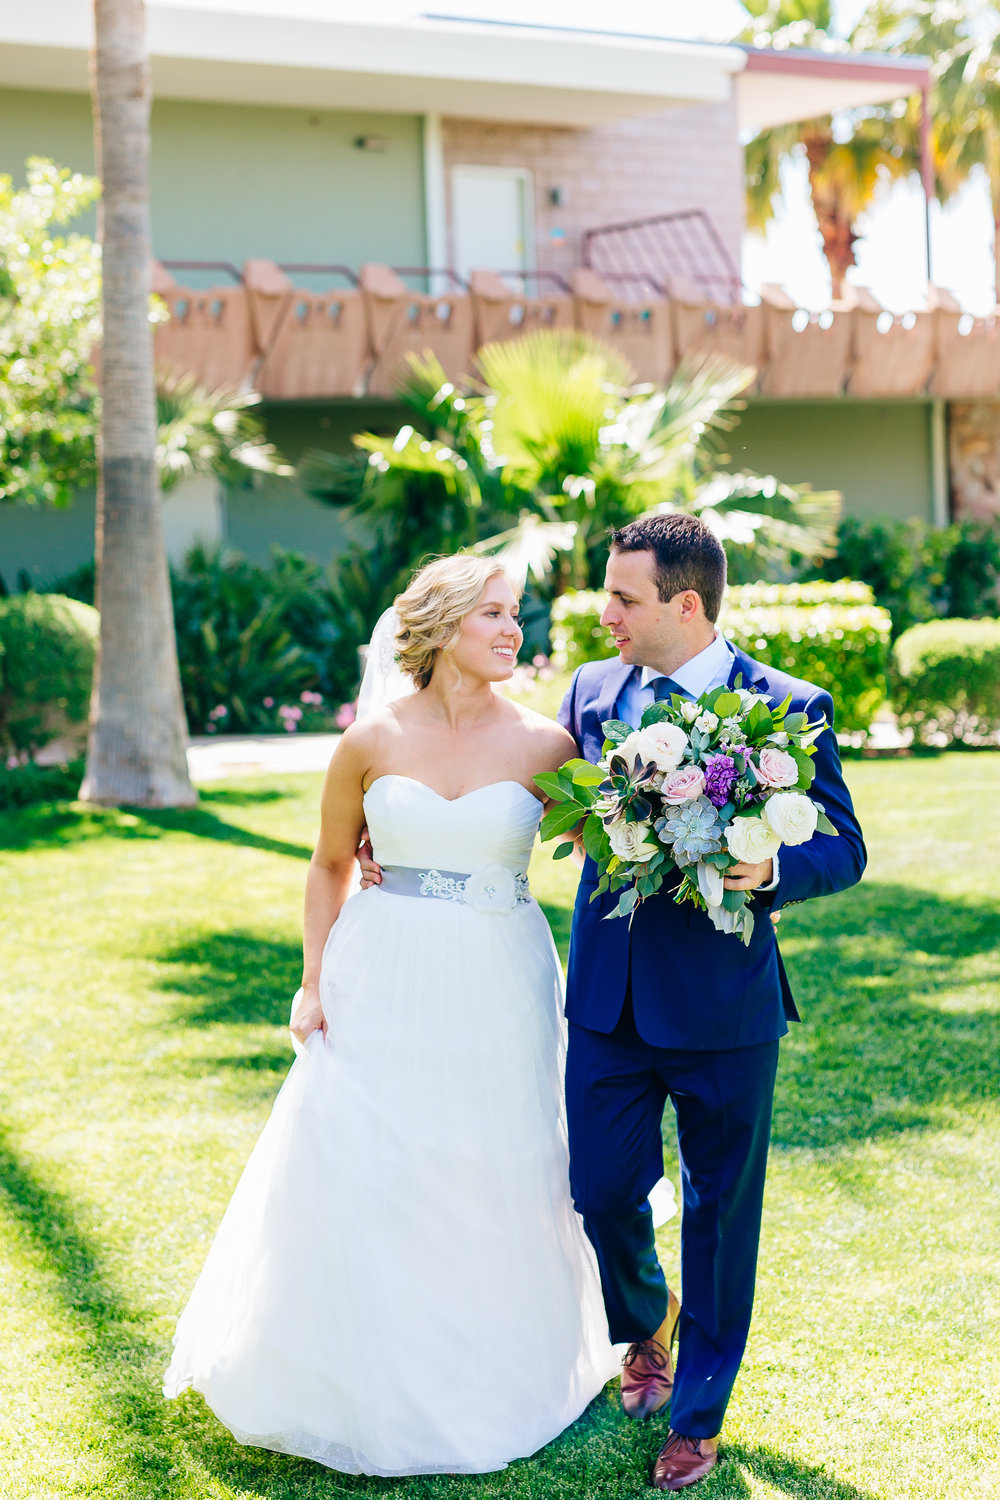 Desert Inspired Spring Wedding at Hotel Valley Ho - Succulent Bouquet